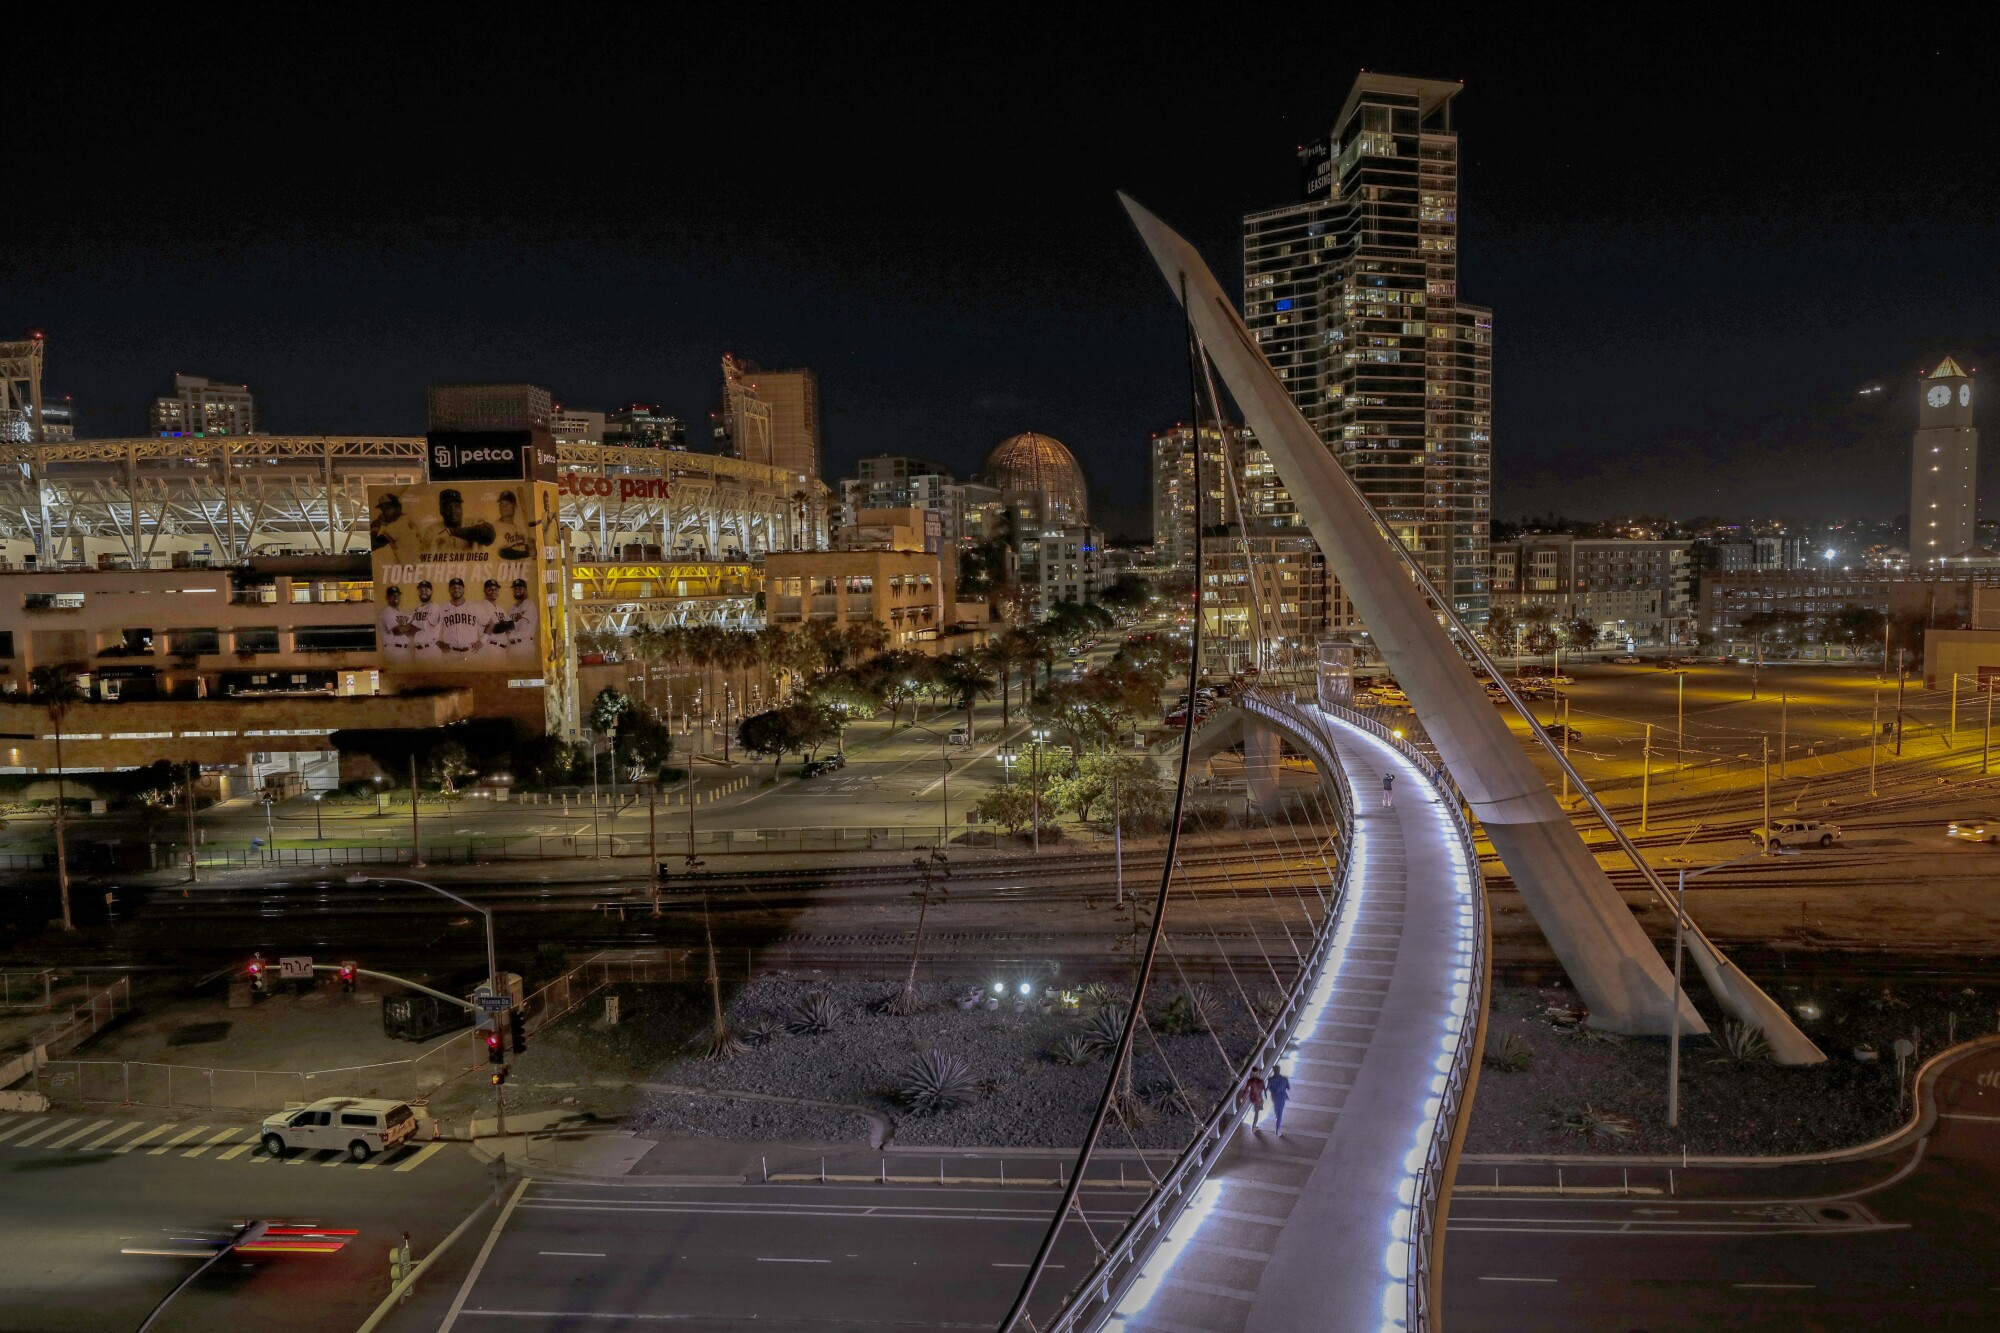 The Harbor Drive pedestrian bridge links the Convention Center to the East Village, Petco Park and the Gaslamp Quarter.